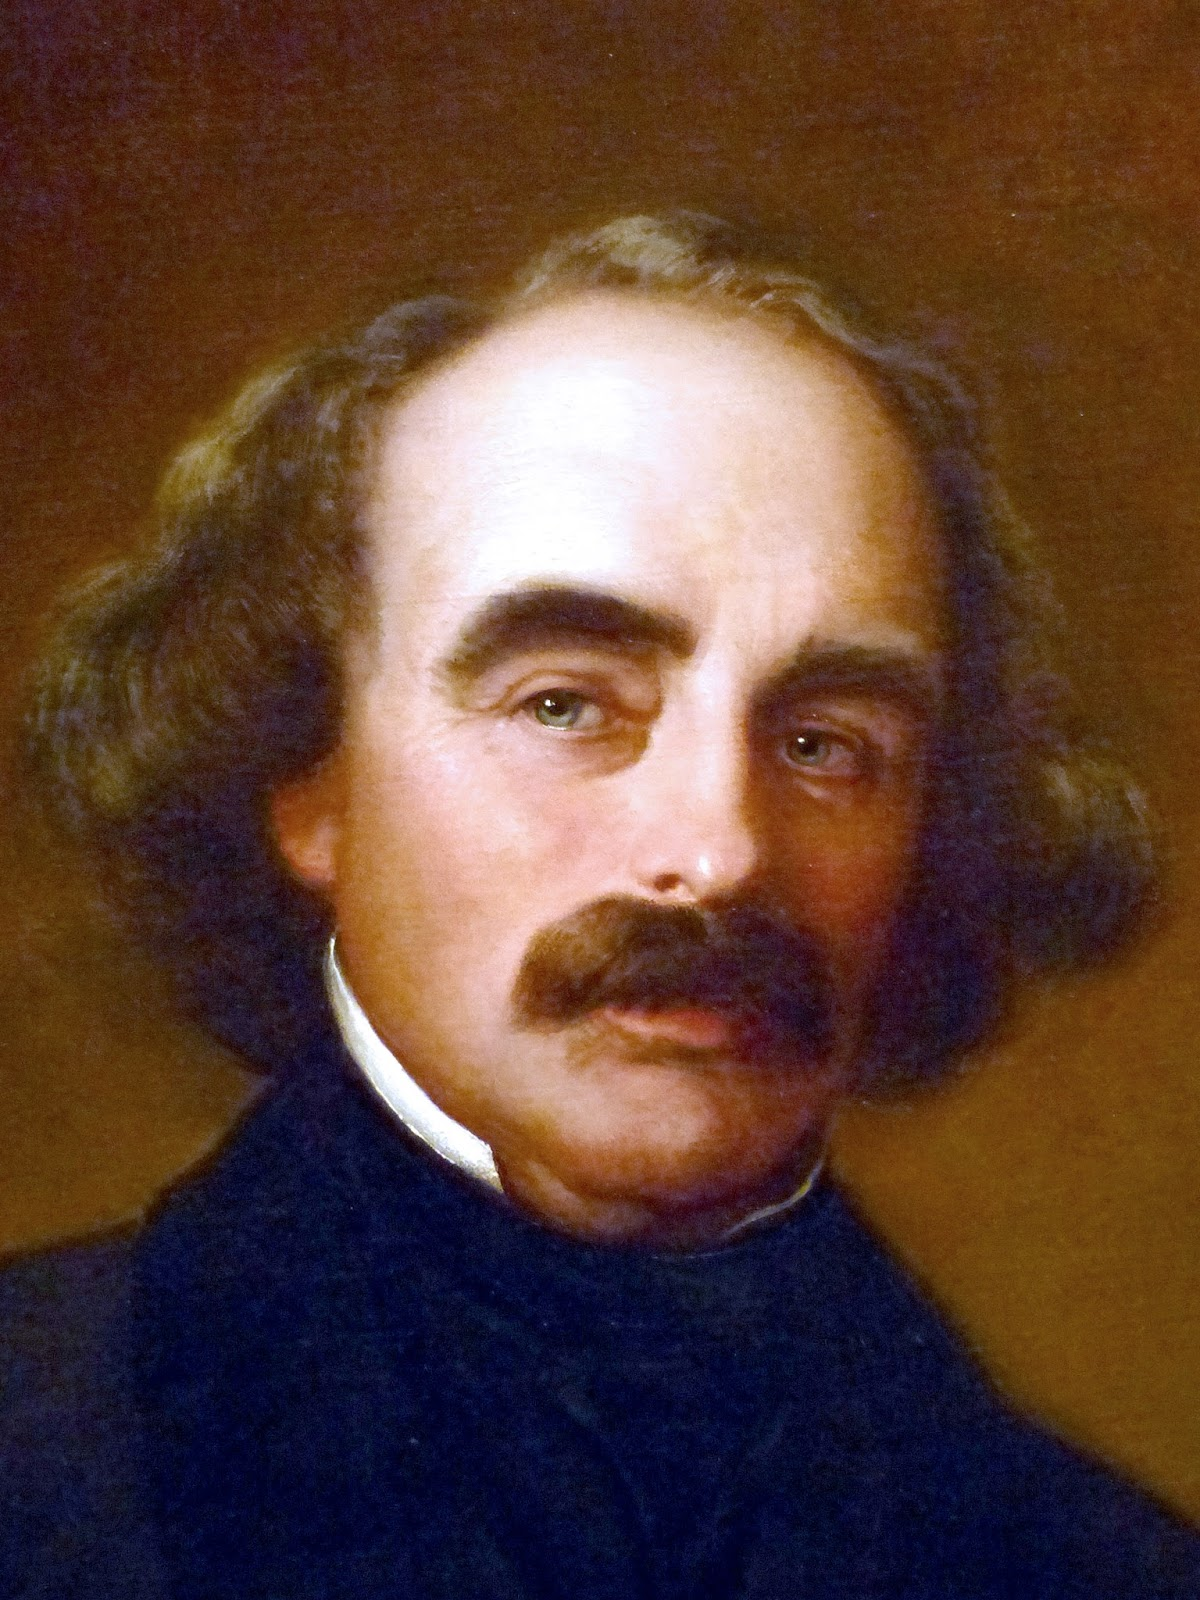 individual vs society scarlet letter nathaniel hawthorne Essay about the individual versus society in the scarlet letter 1005 words 5 pages the individual vs society in the scarlet letter  in the scarlet letter, nathaniel hawthorne expressly.